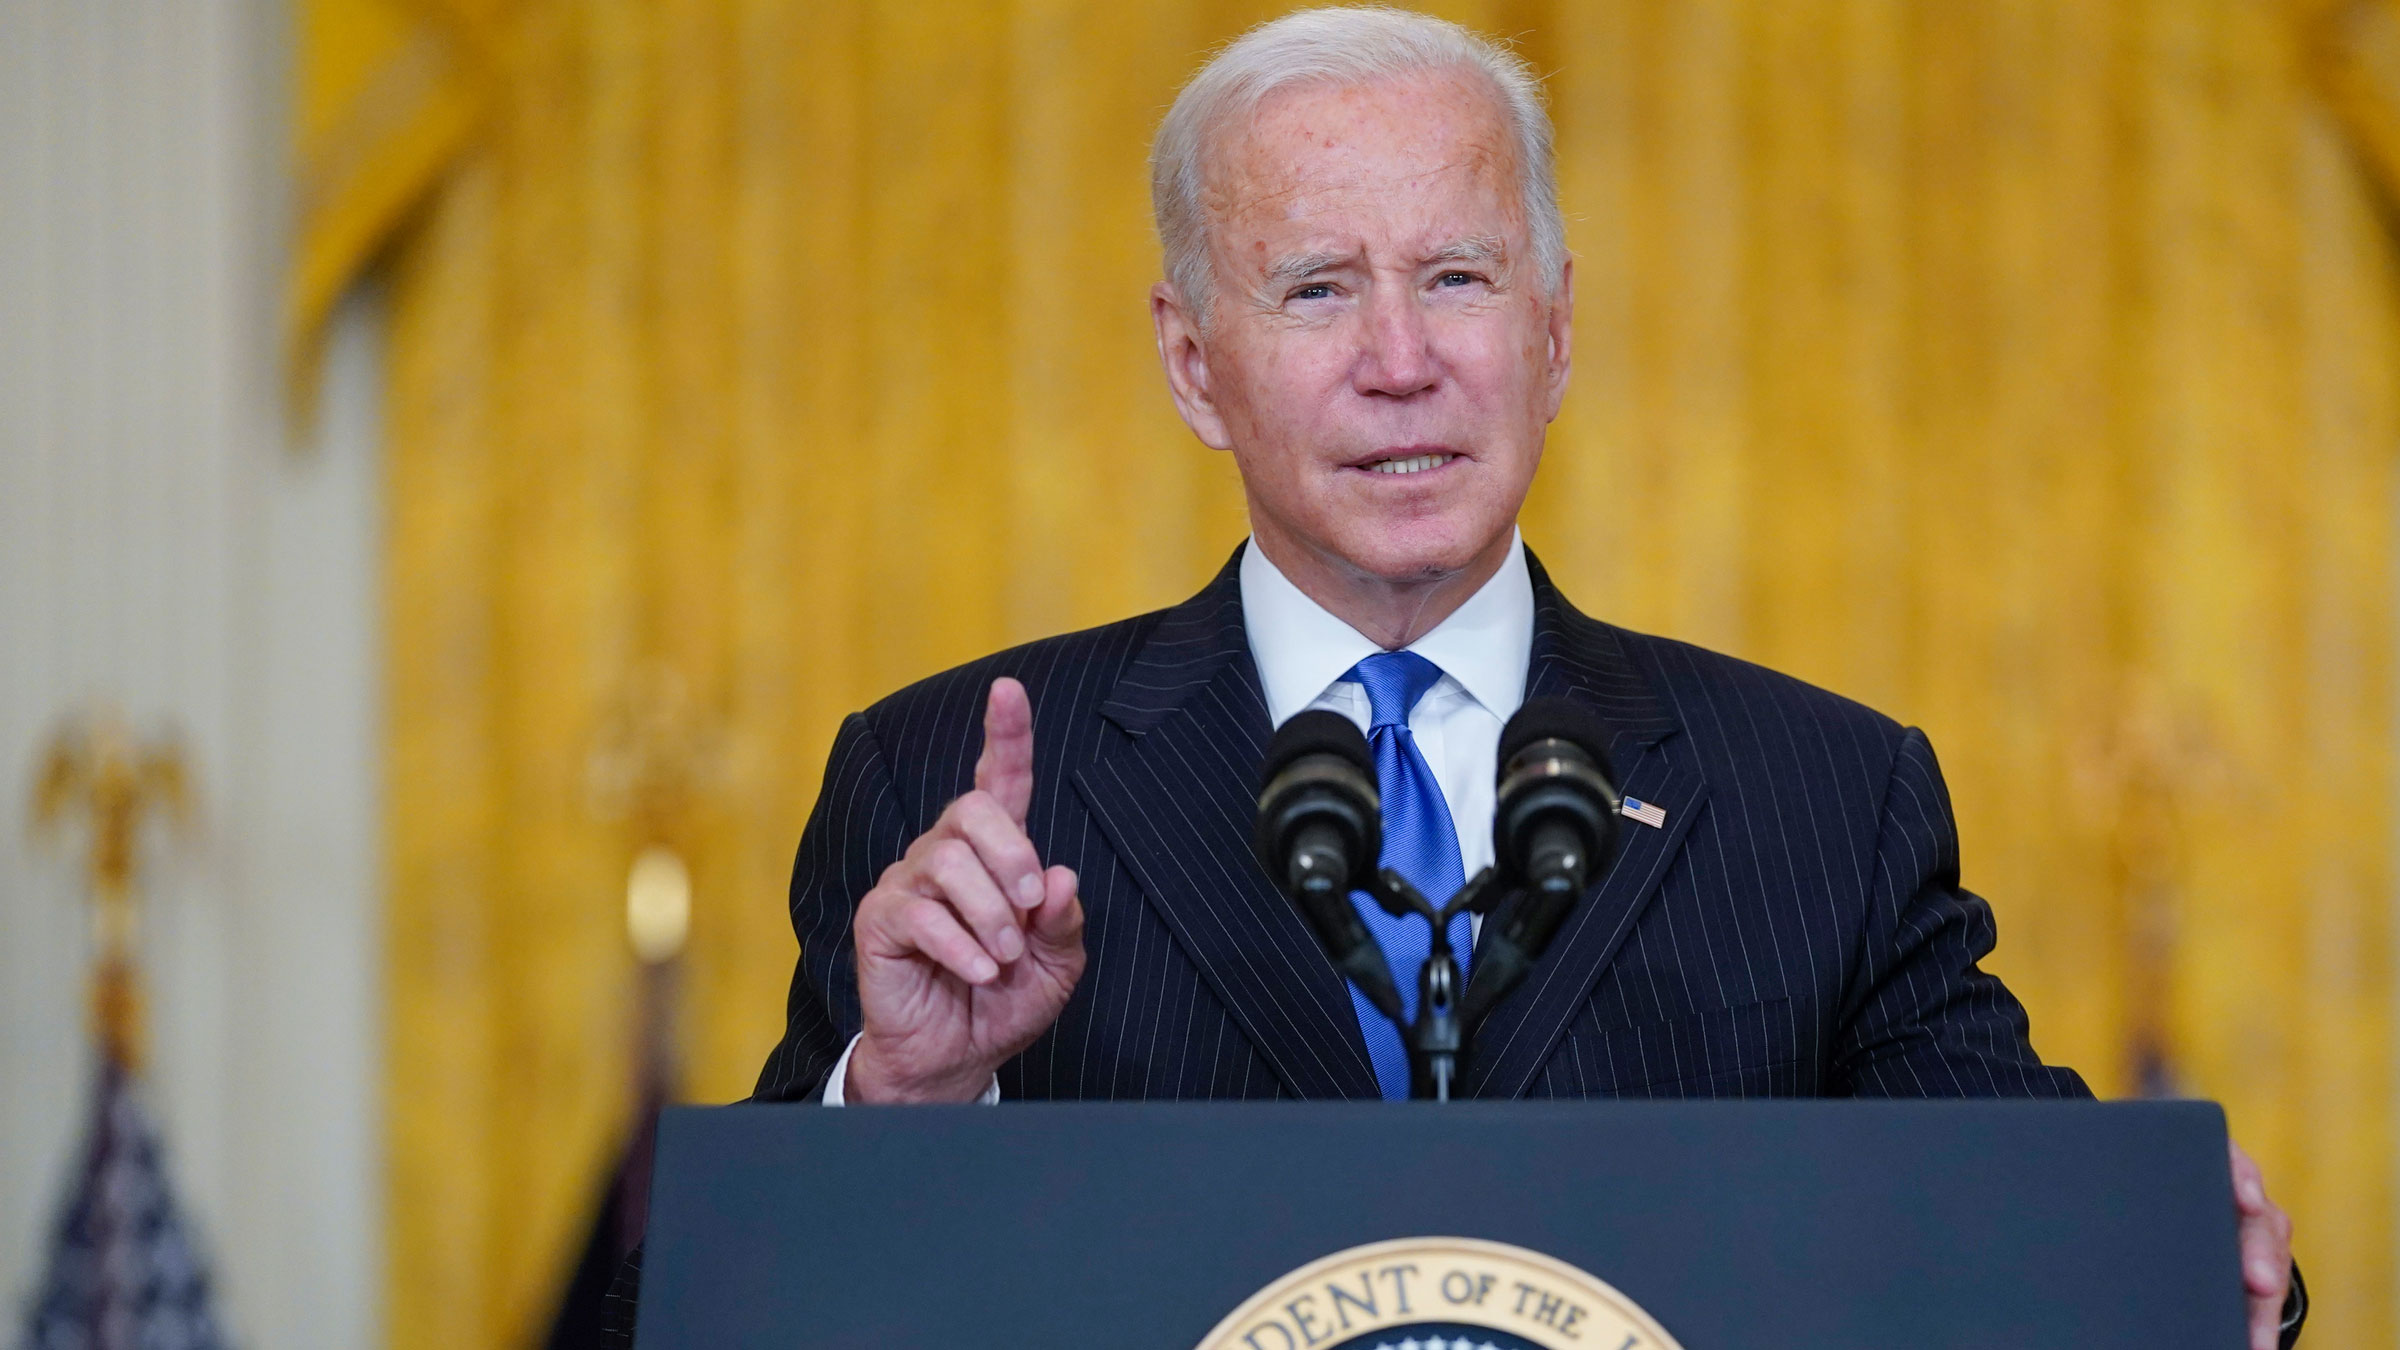 President Joe Biden delivers remarks at the White House on Wednesday.